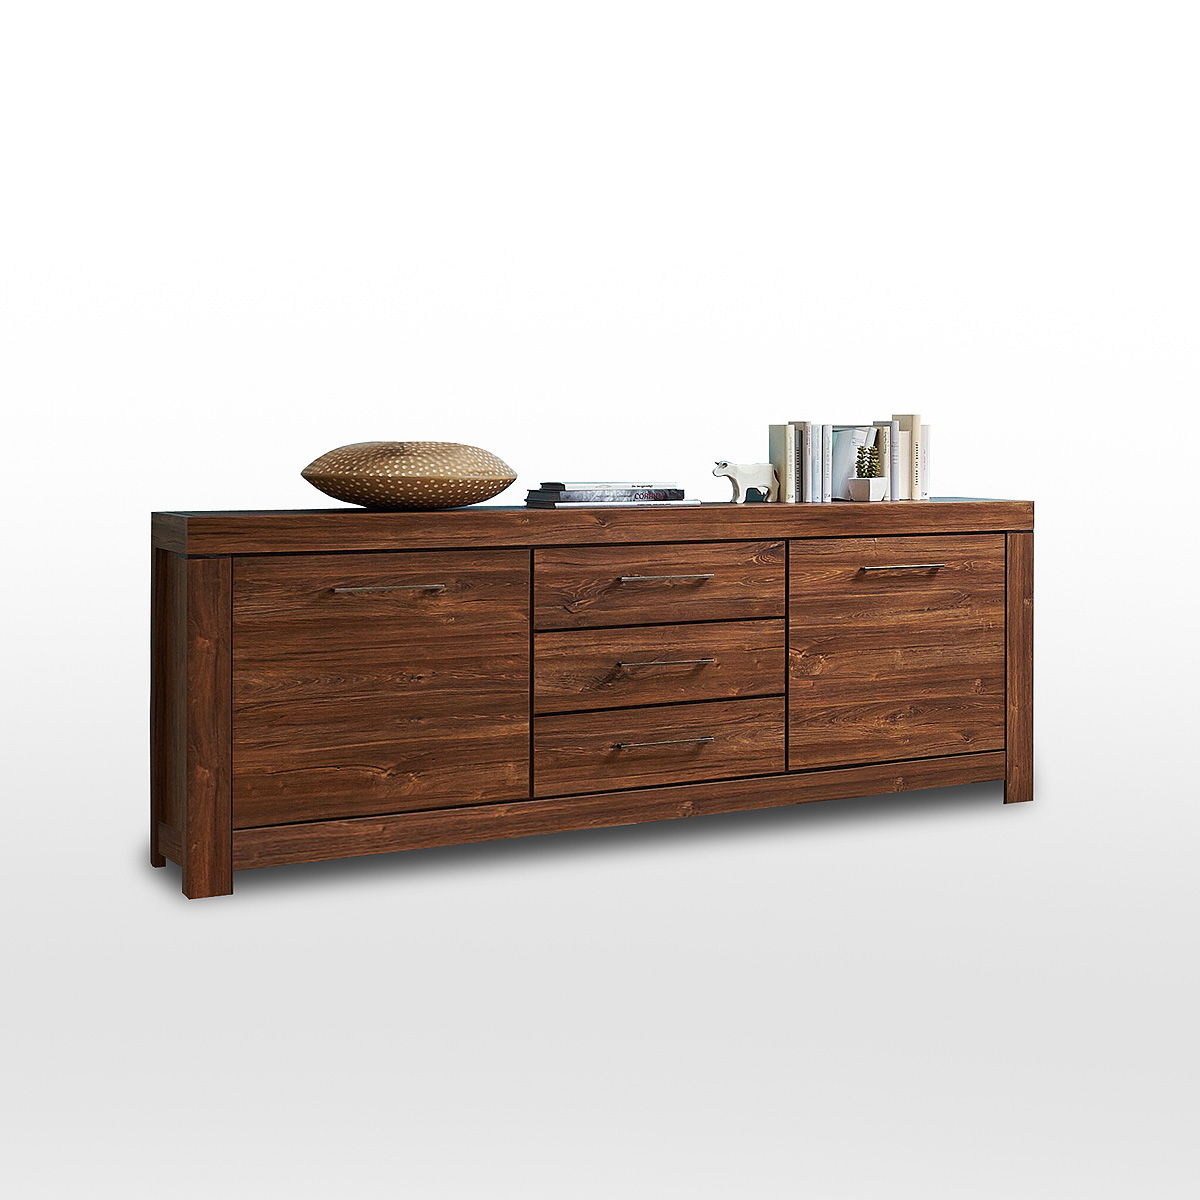 sideboard gent kommode anrichte schrank in akazie dunkel. Black Bedroom Furniture Sets. Home Design Ideas